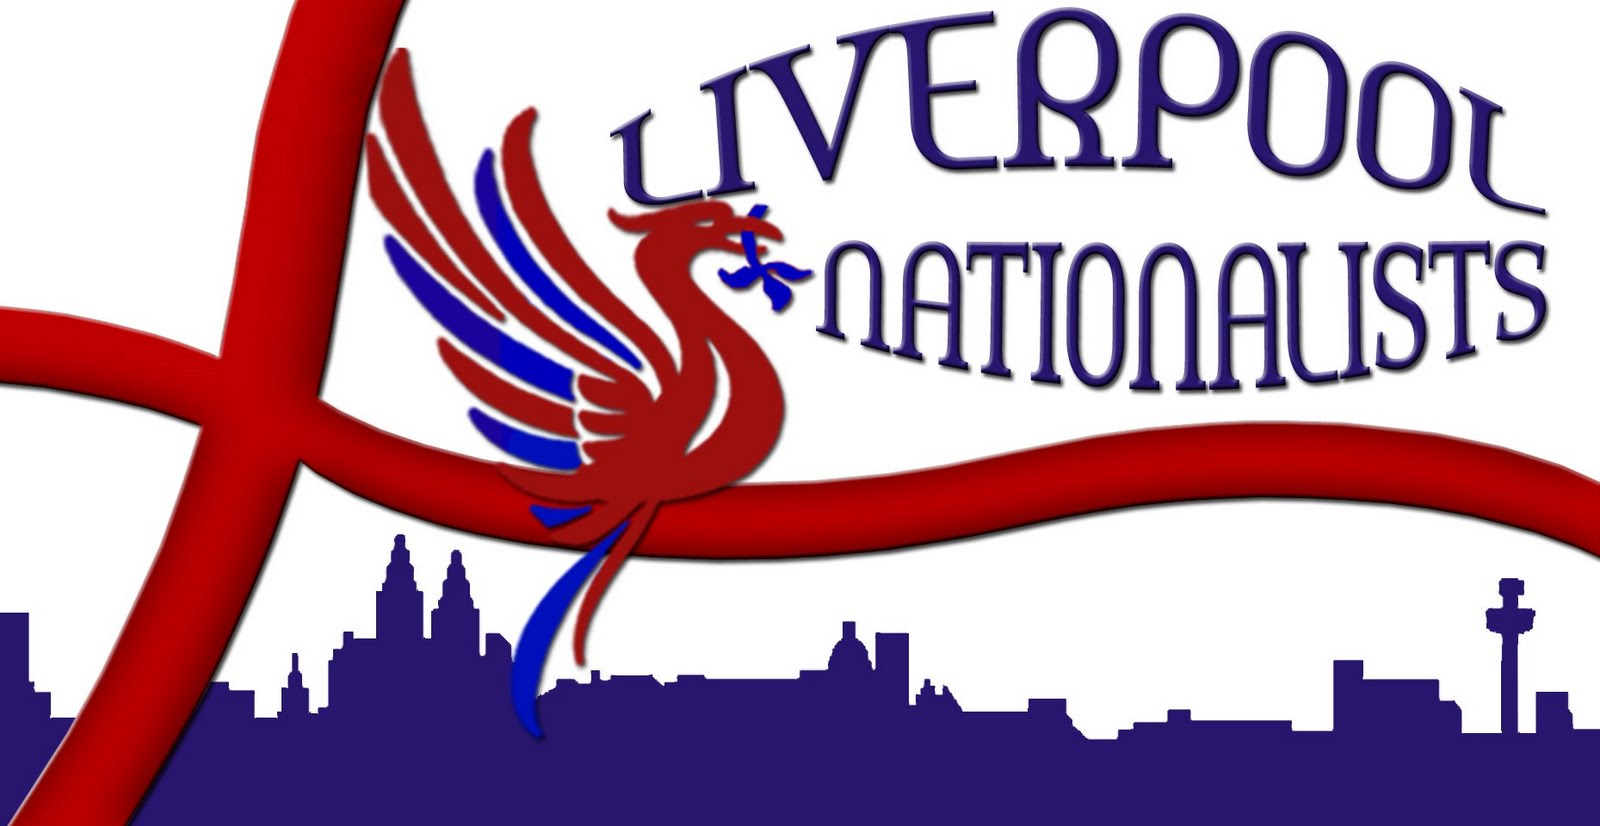 Merseyside  and Liverpool Nationalists!